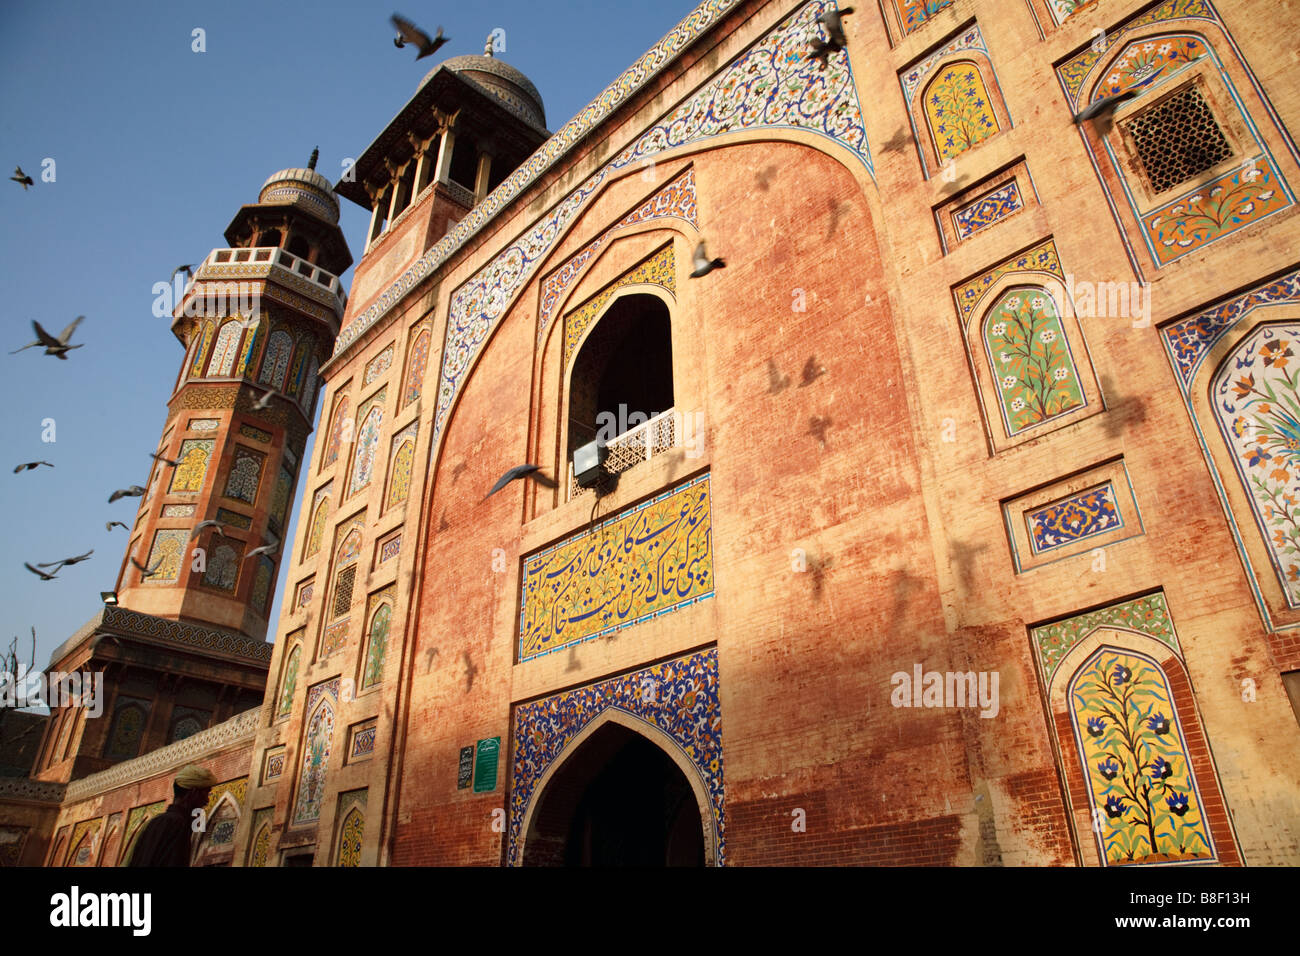 Wazir Khan Mosque in Pakistan, Lahore - Stock Image